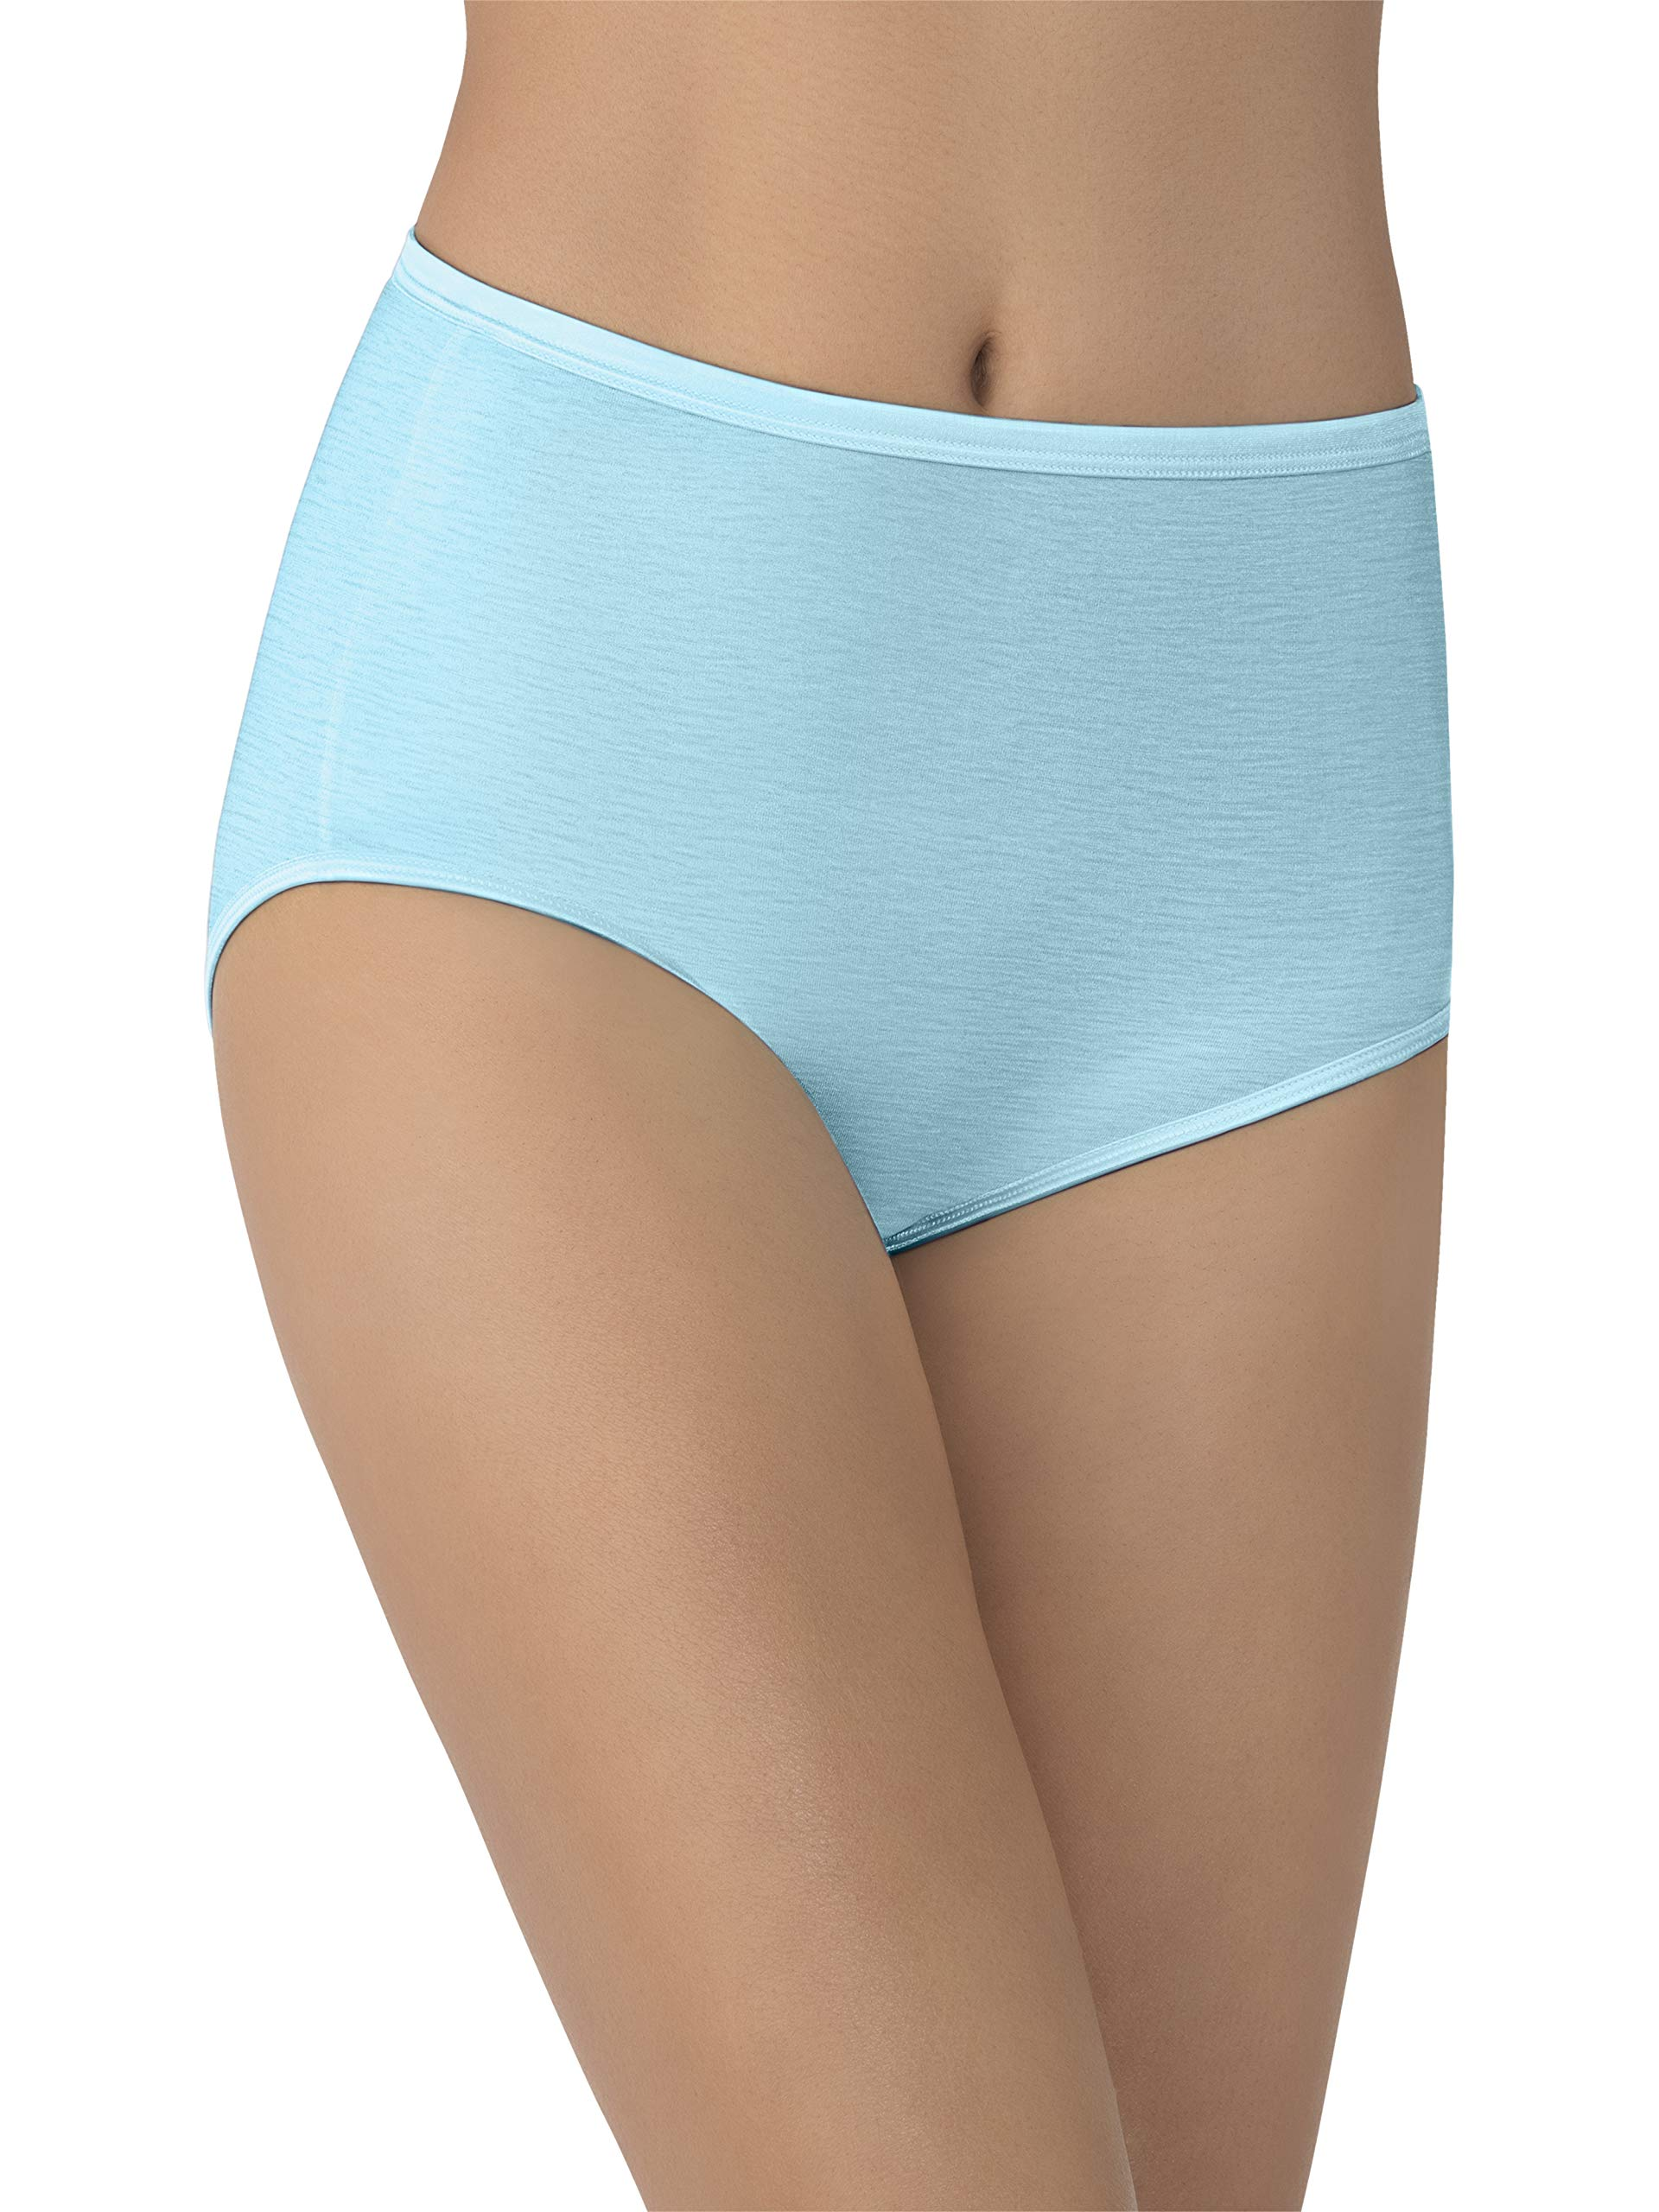 a0978c4c1431 Best Rated in Women's Briefs & Helpful Customer Reviews - Amazon.com